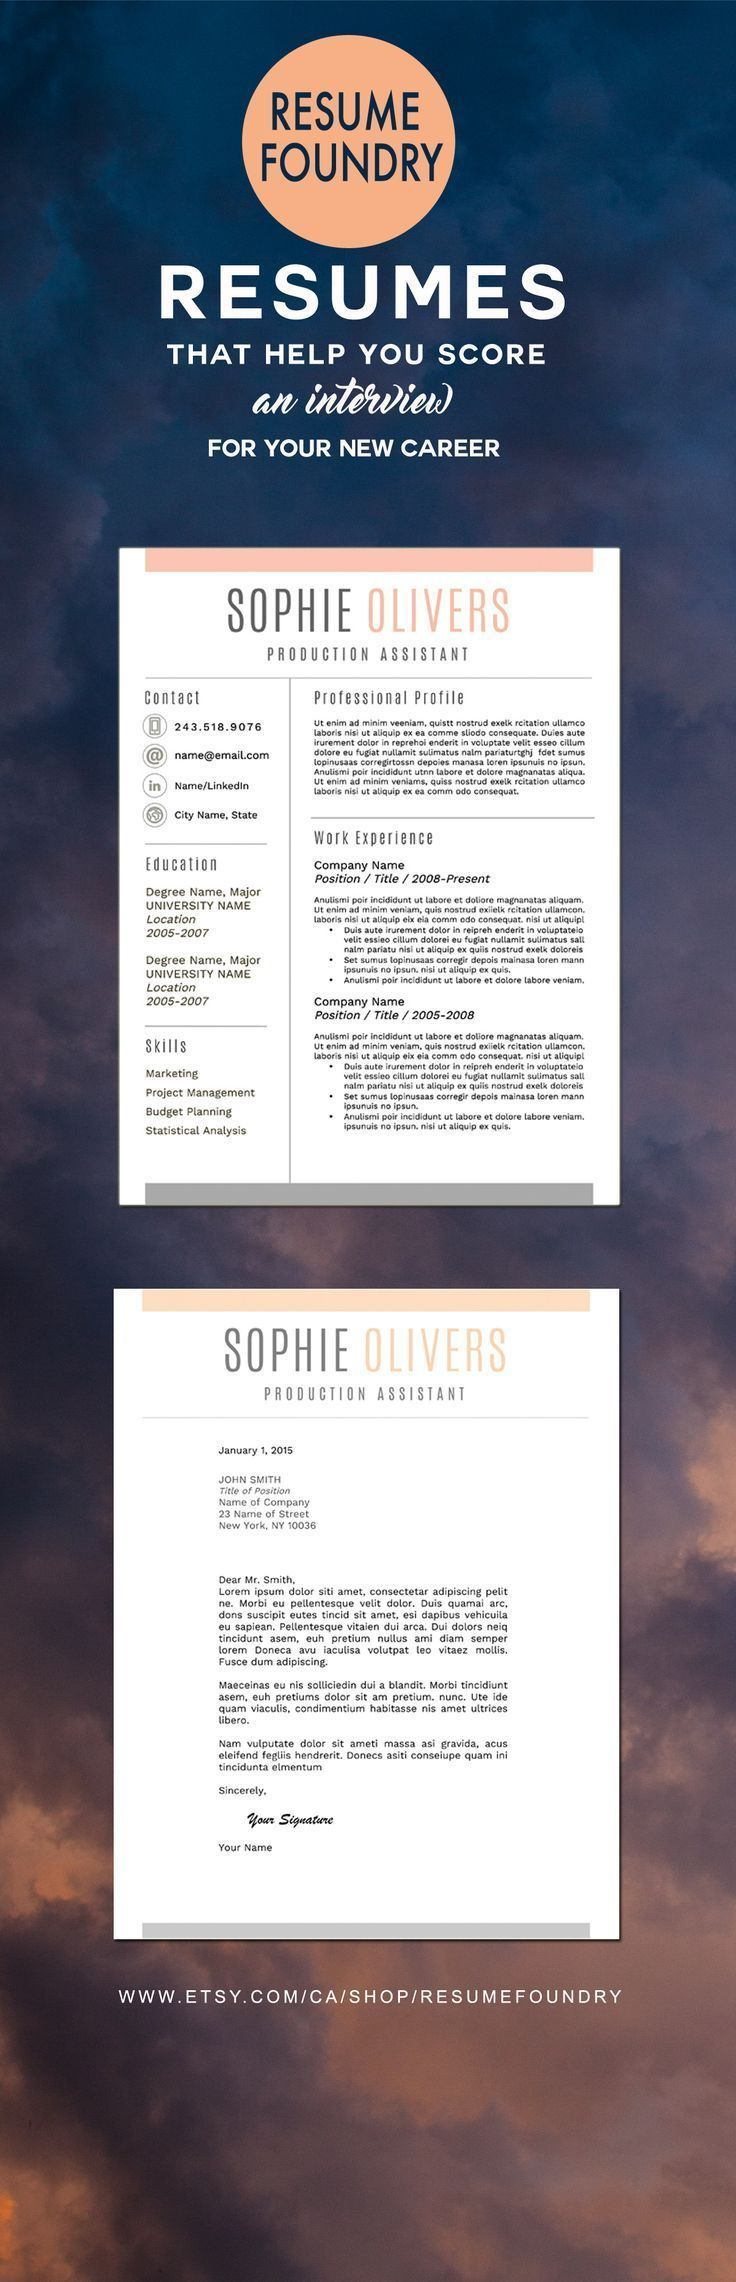 Completely transform your resume for 15 with